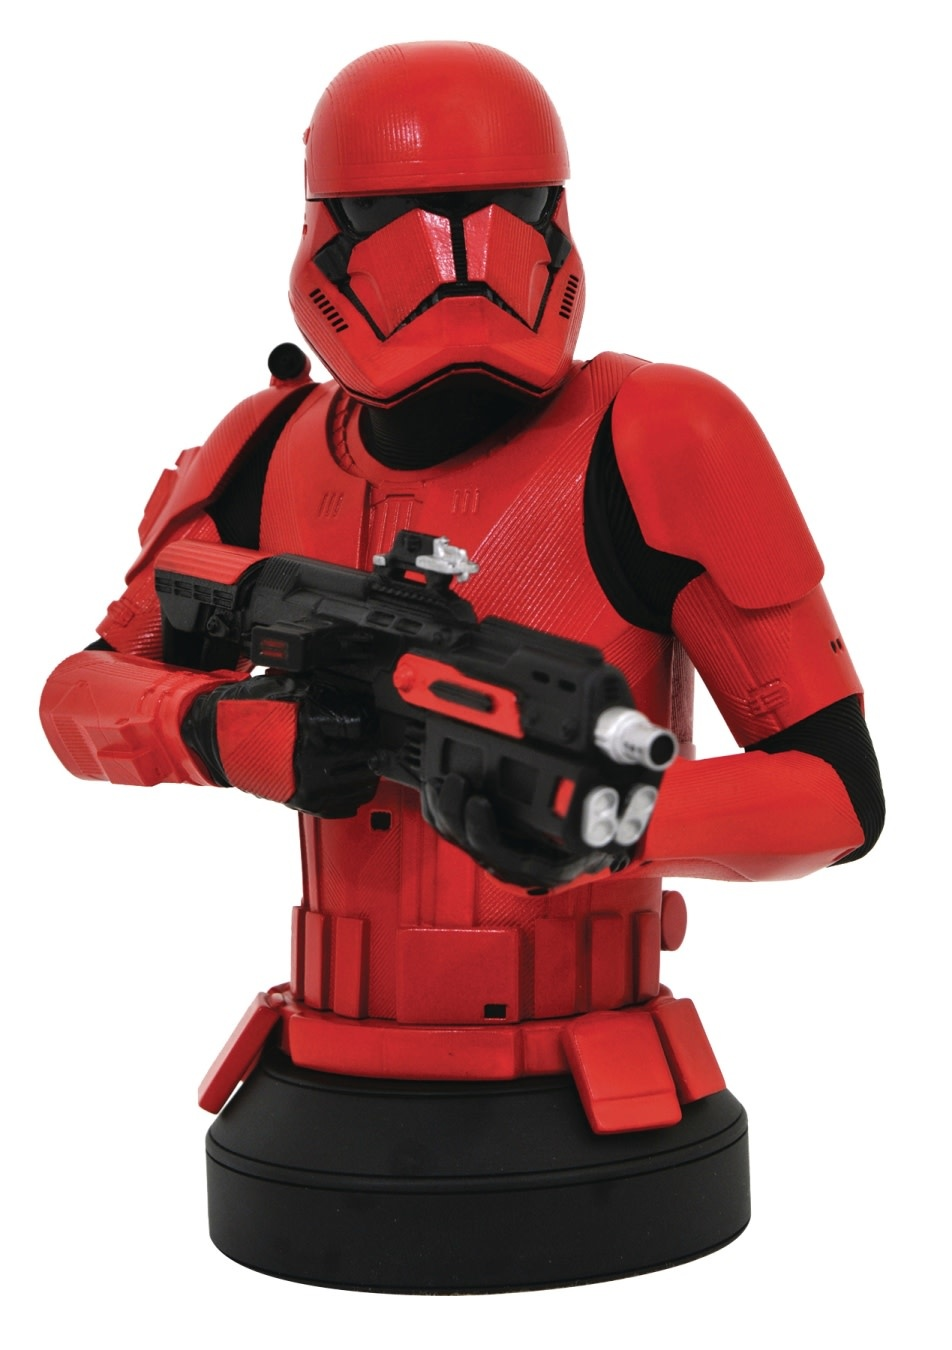 Diamond Direct Star Wars: The Rise of Skywalker - Sith Trooper 1:6 Scale Bust